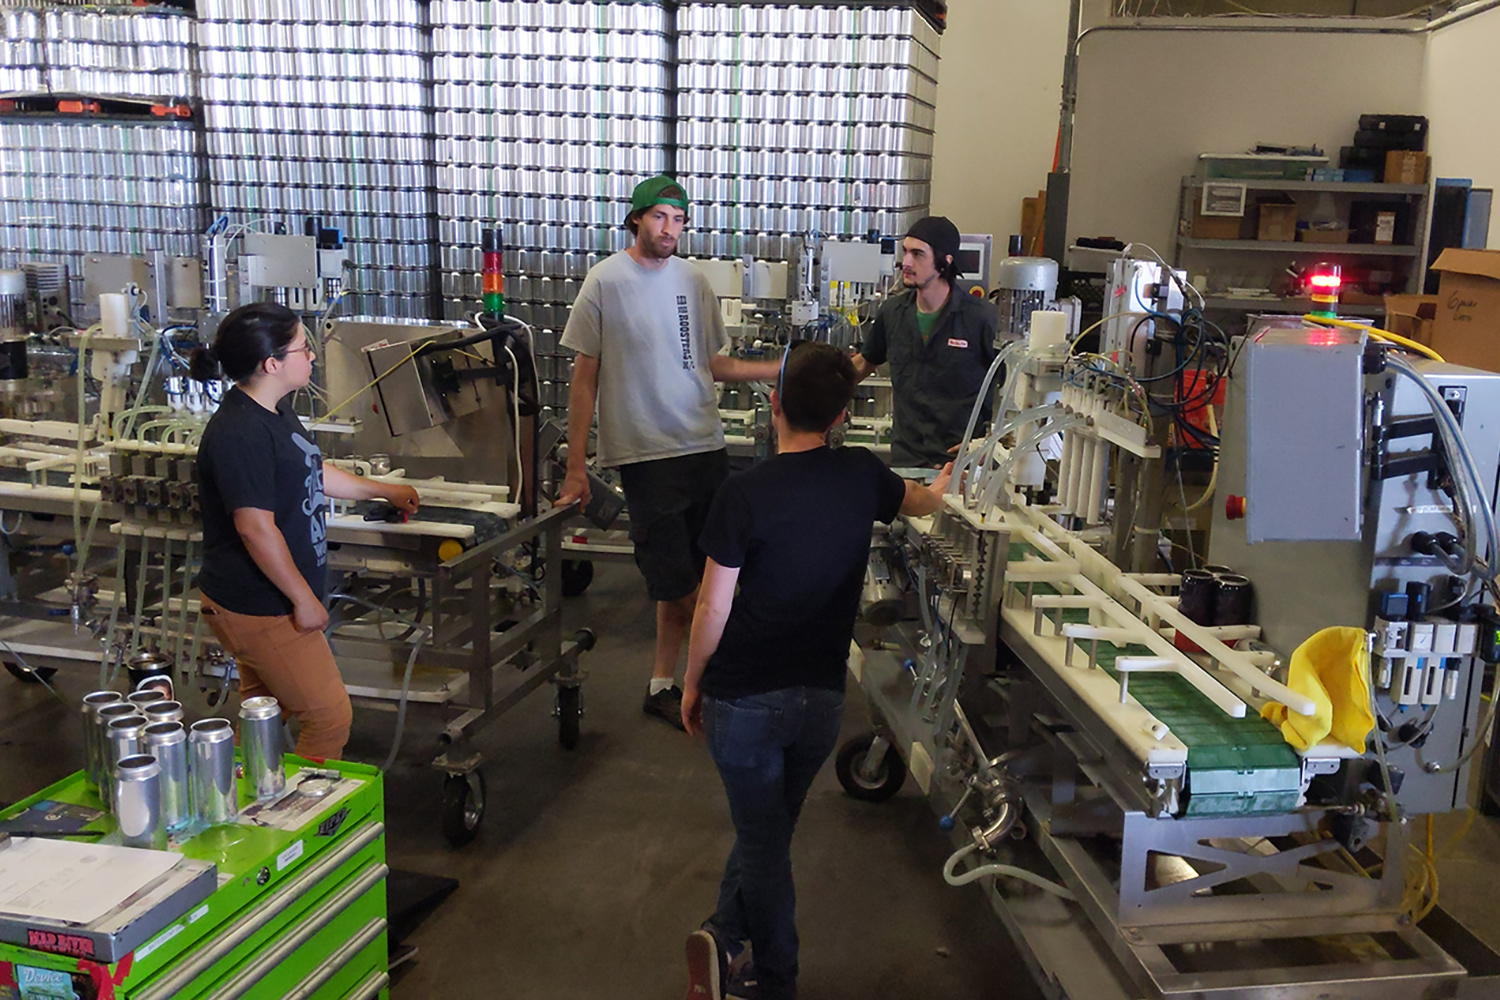 Sarah, Wade, Lindsey, and Camreon having a chat in the warehouse next to a couple of the canning lines